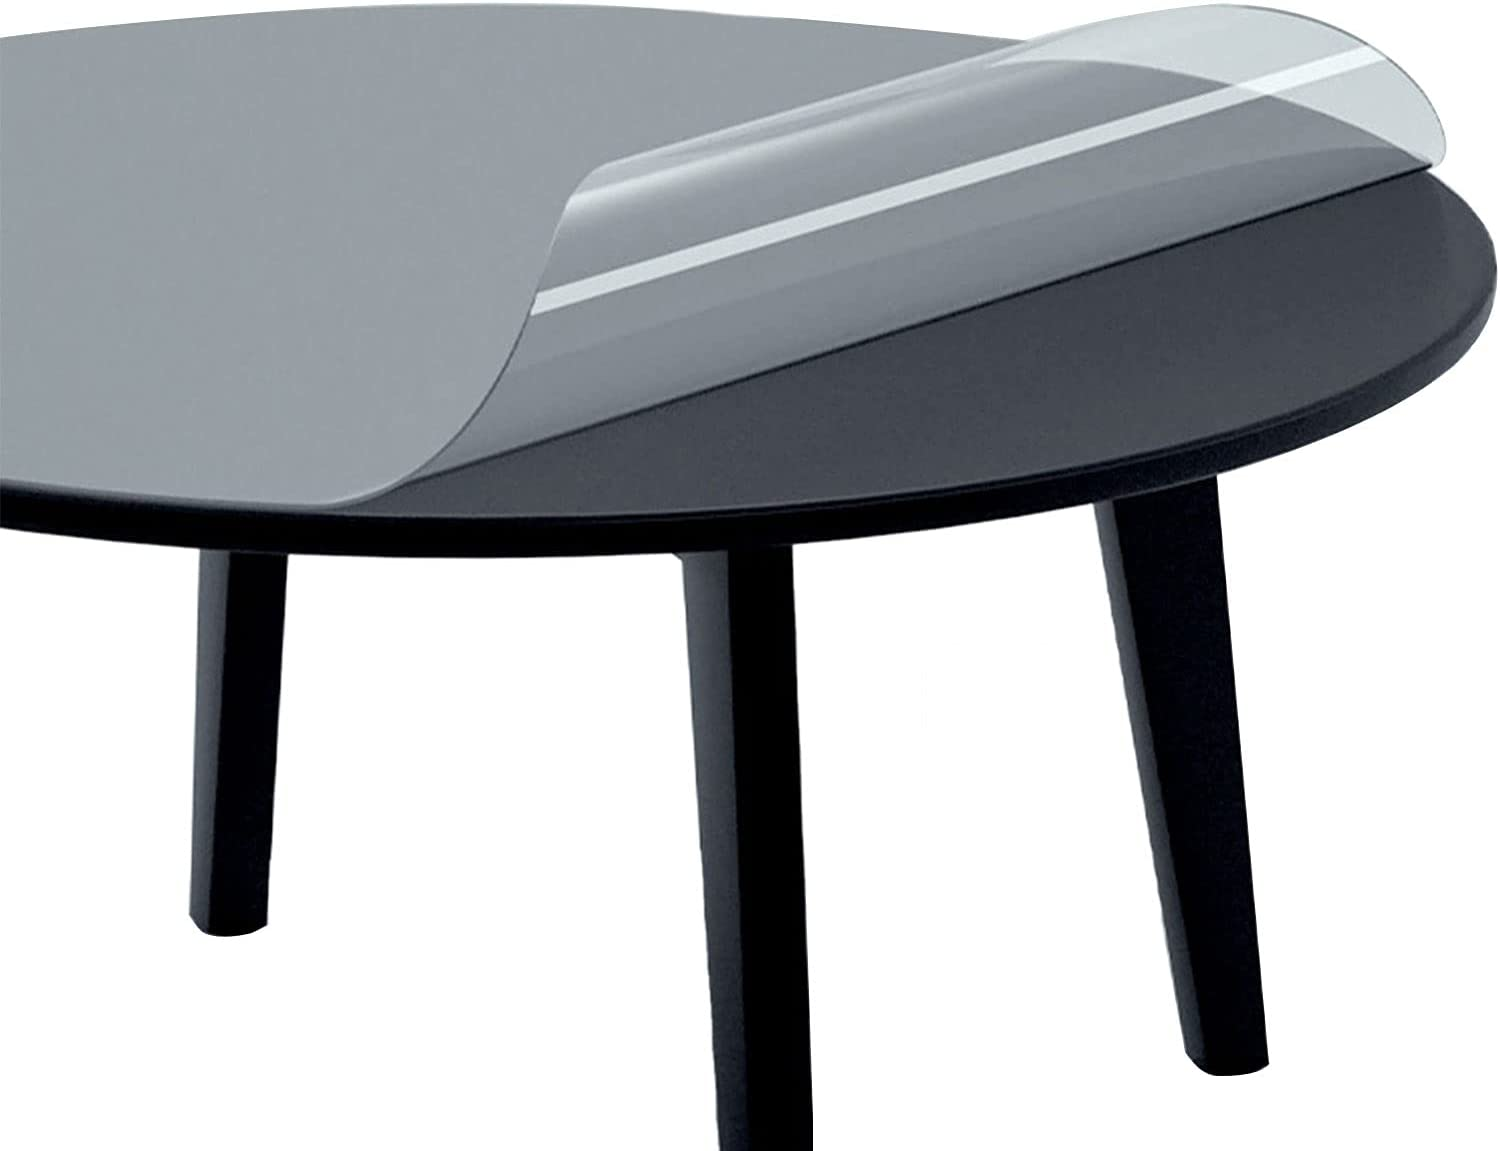 Max 60% OFF Plastic Table Cloth Multi 55% OFF Size Pad - Tablecloth Protector